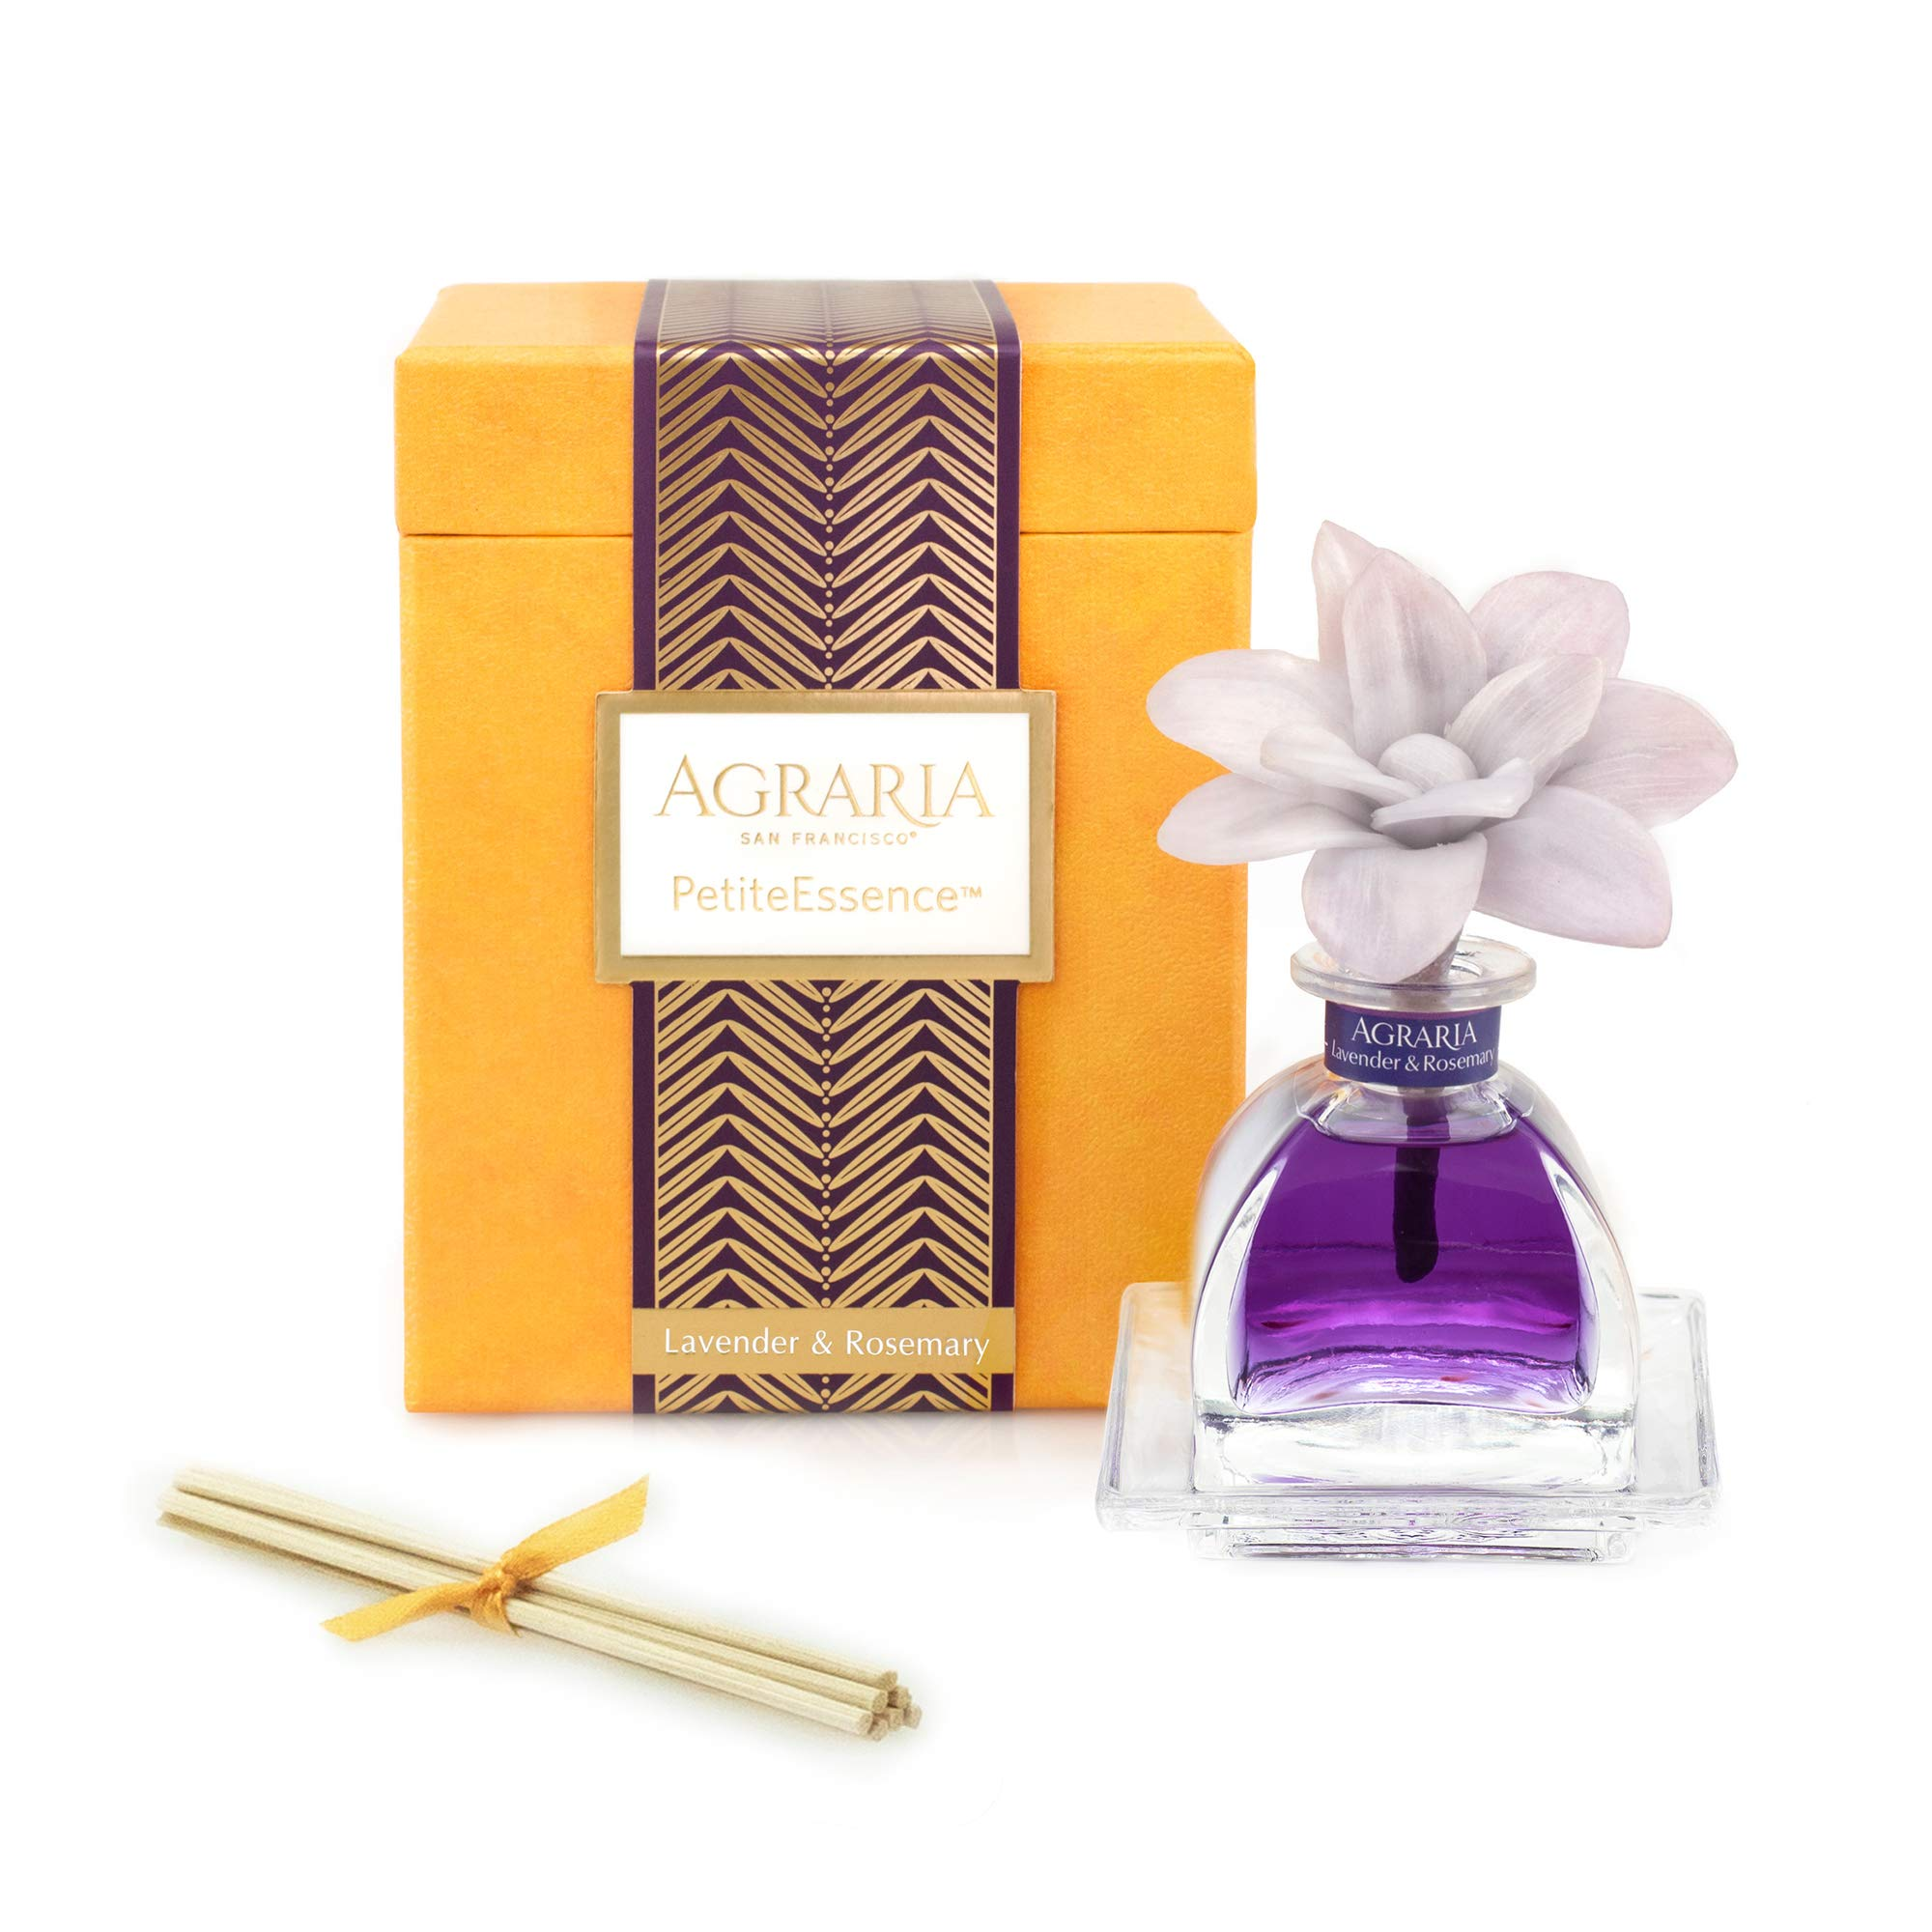 AGRARIA Lavender & Rosemary Scented PetiteEssence Diffuser, 1.7 Ounces with Reeds and a Flower by AGRARIA